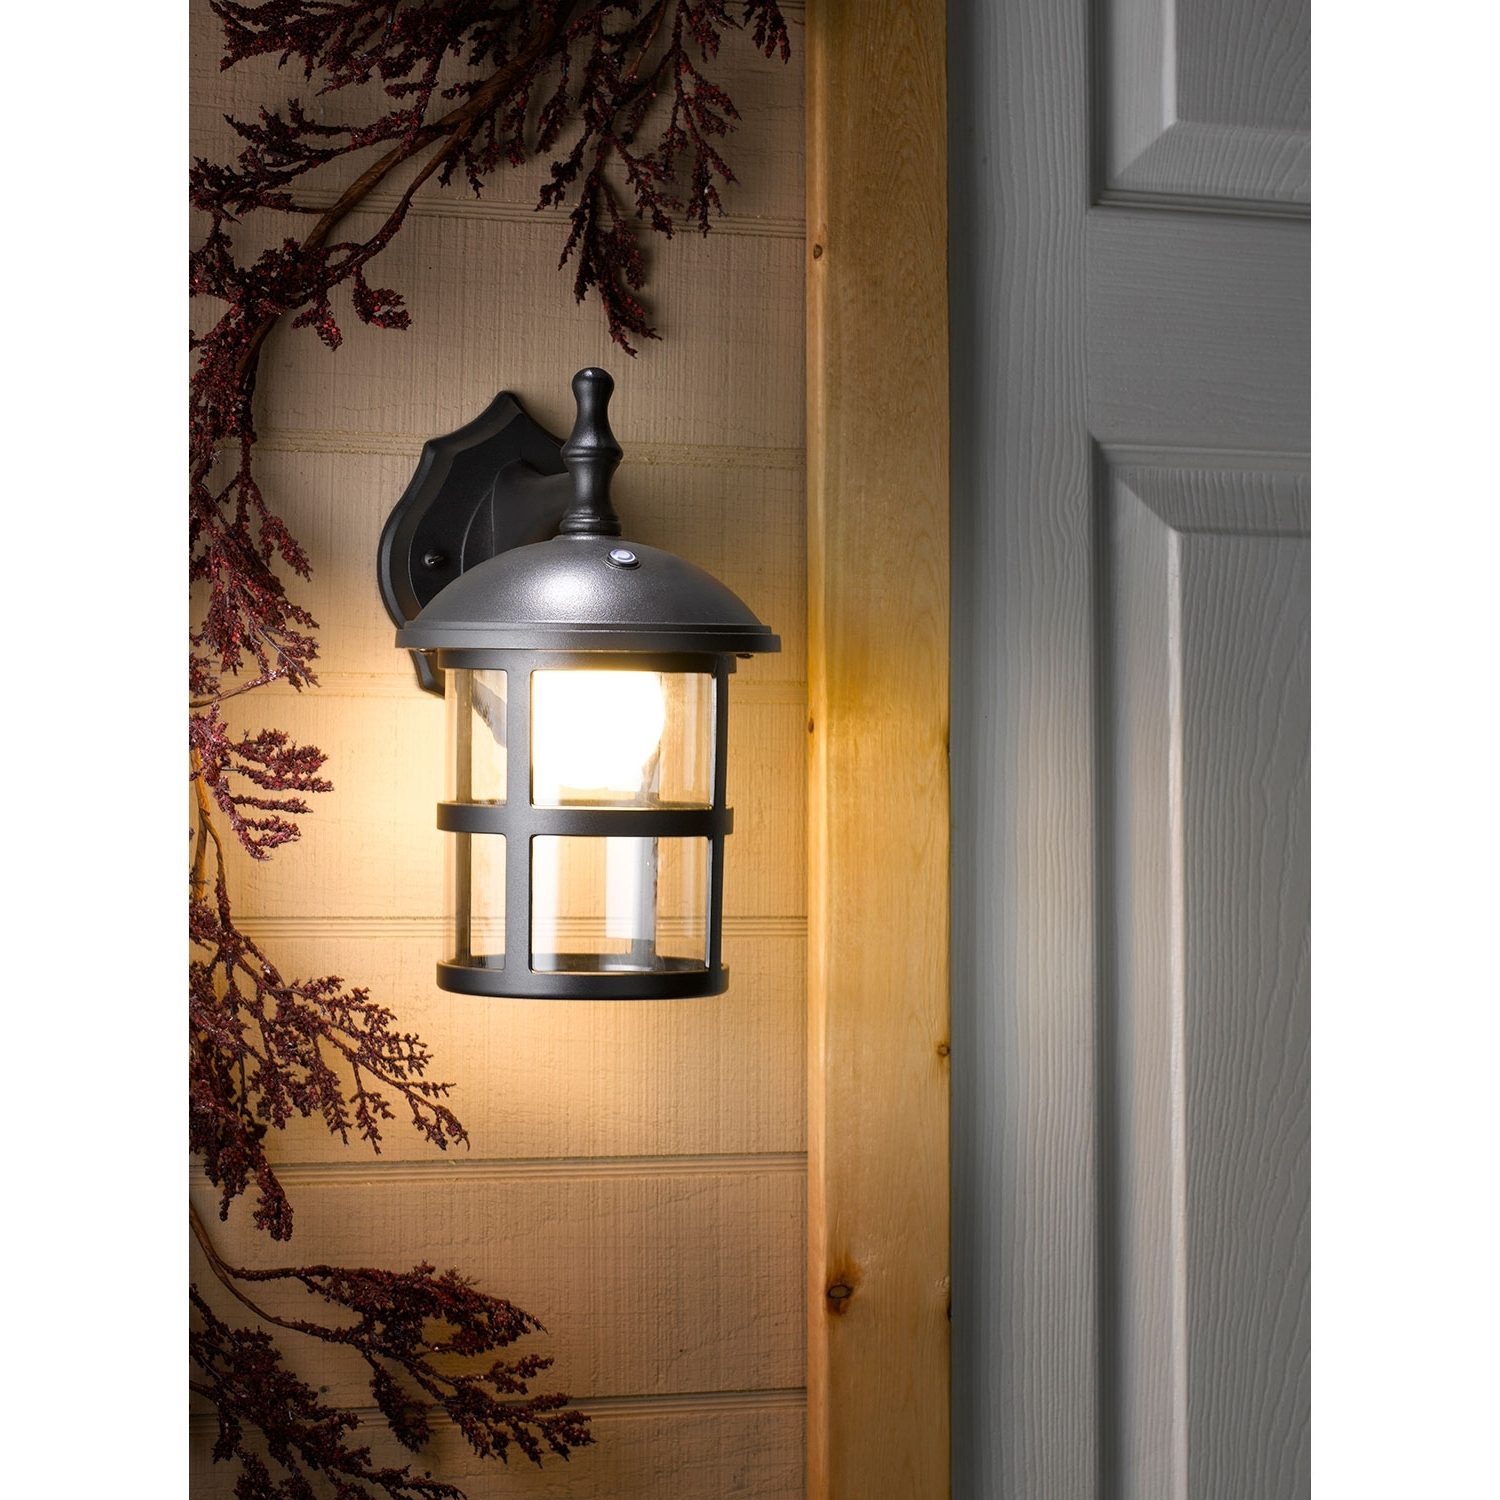 Honeywell Ss0201 08 Led Outdoor Wall Mount Lantern Light, 3000K, 400 With Regard To Best And Newest Outdoor Wall Lantern Lights (View 7 of 20)